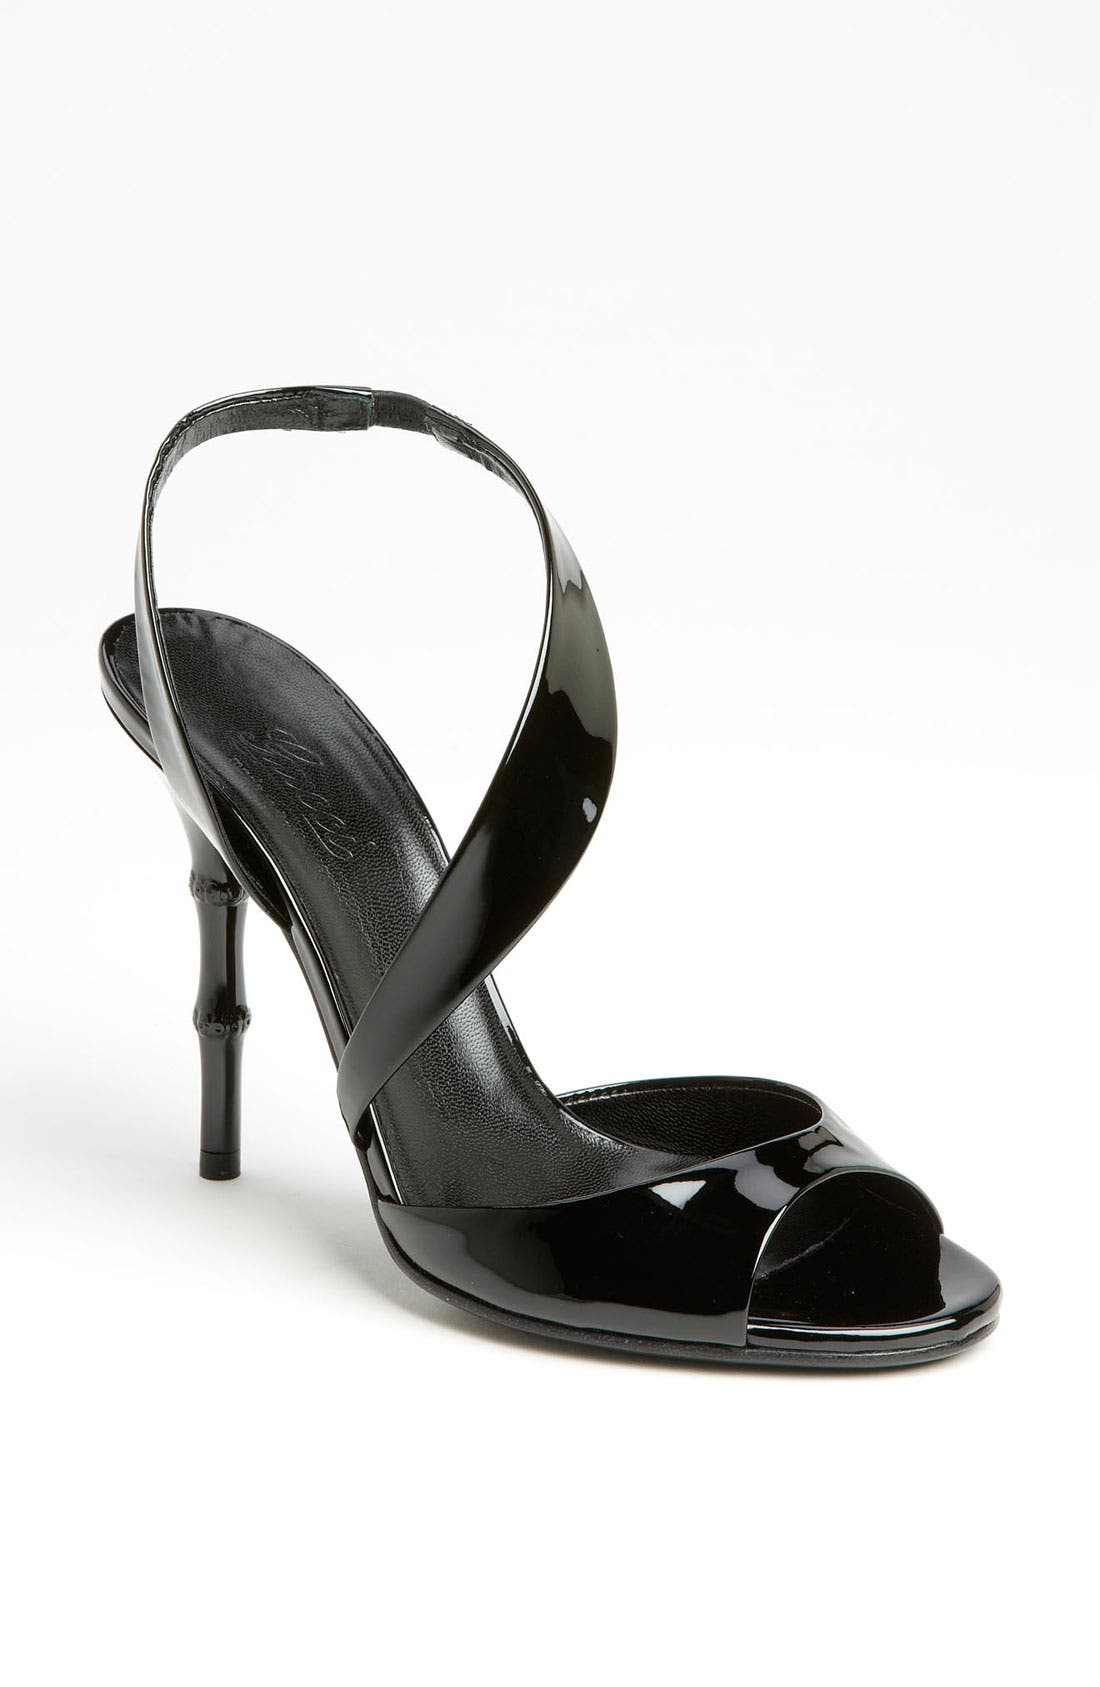 Alternate Image 1 Selected - Gucci 'Linda' Bamboo Heel Sandal